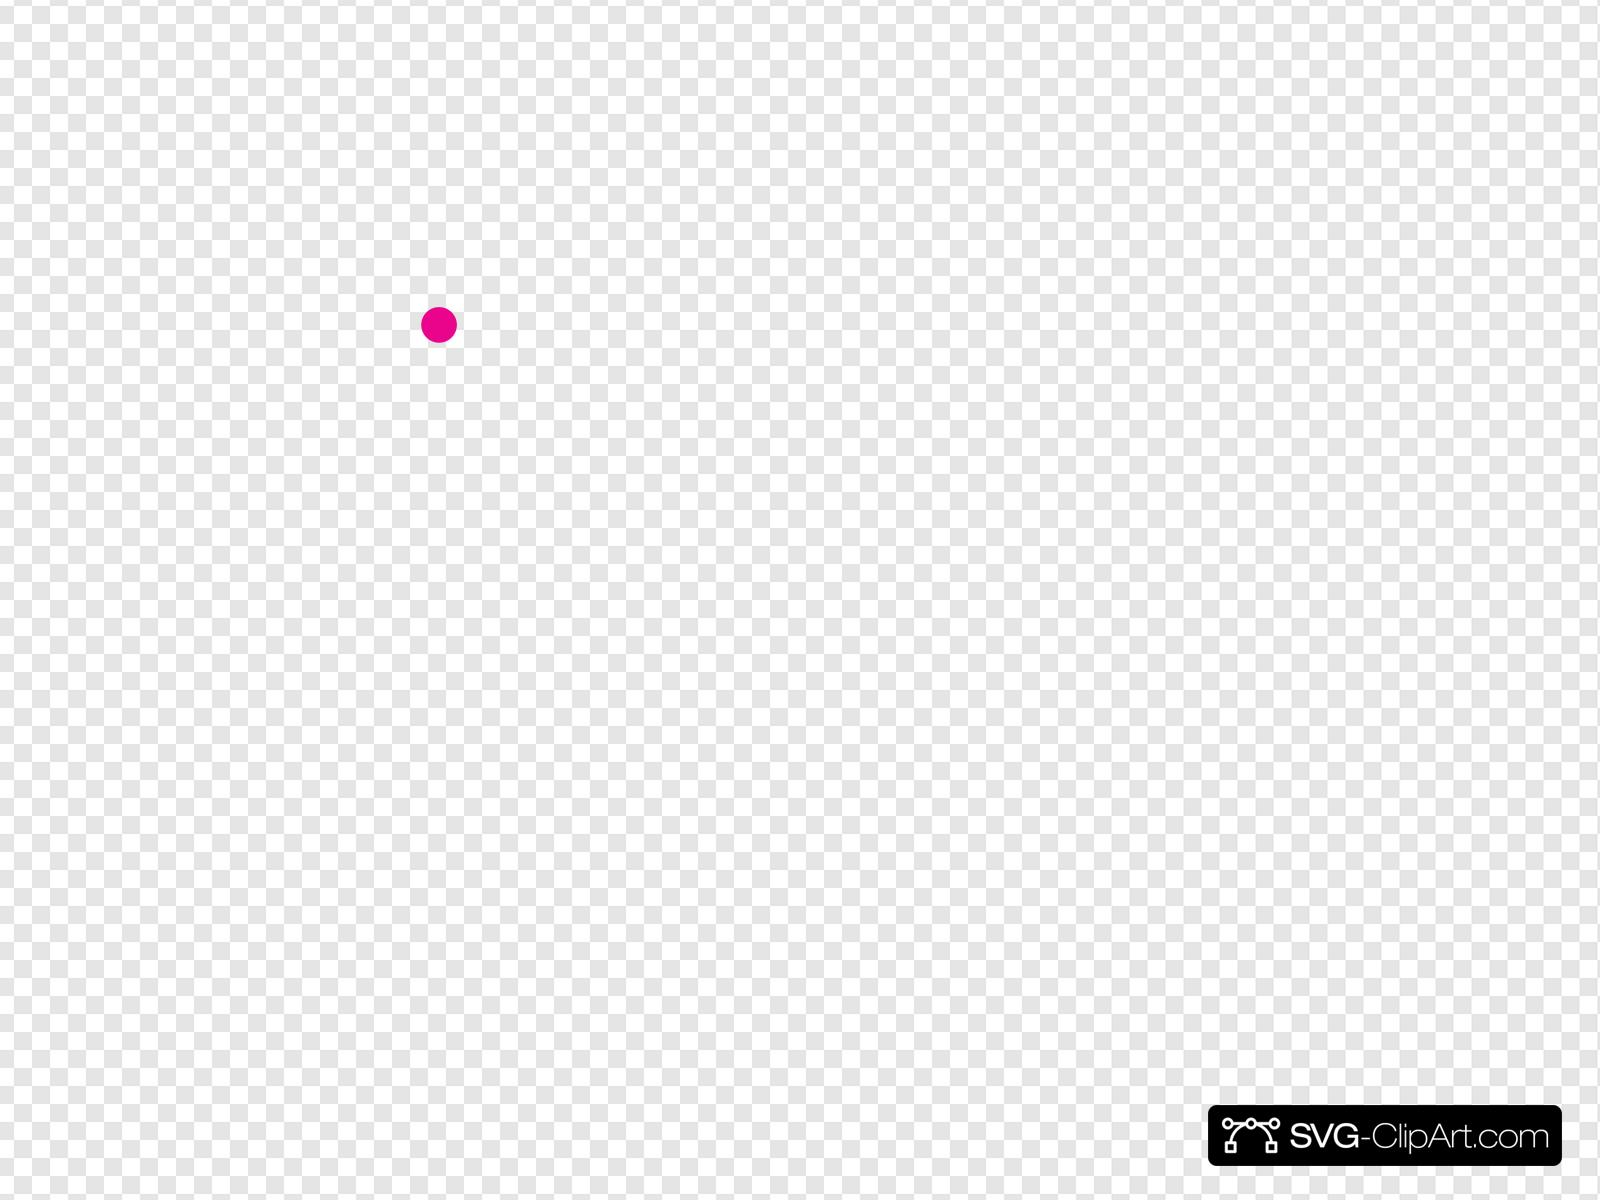 Pink Dot Clip art, Icon and SVG.